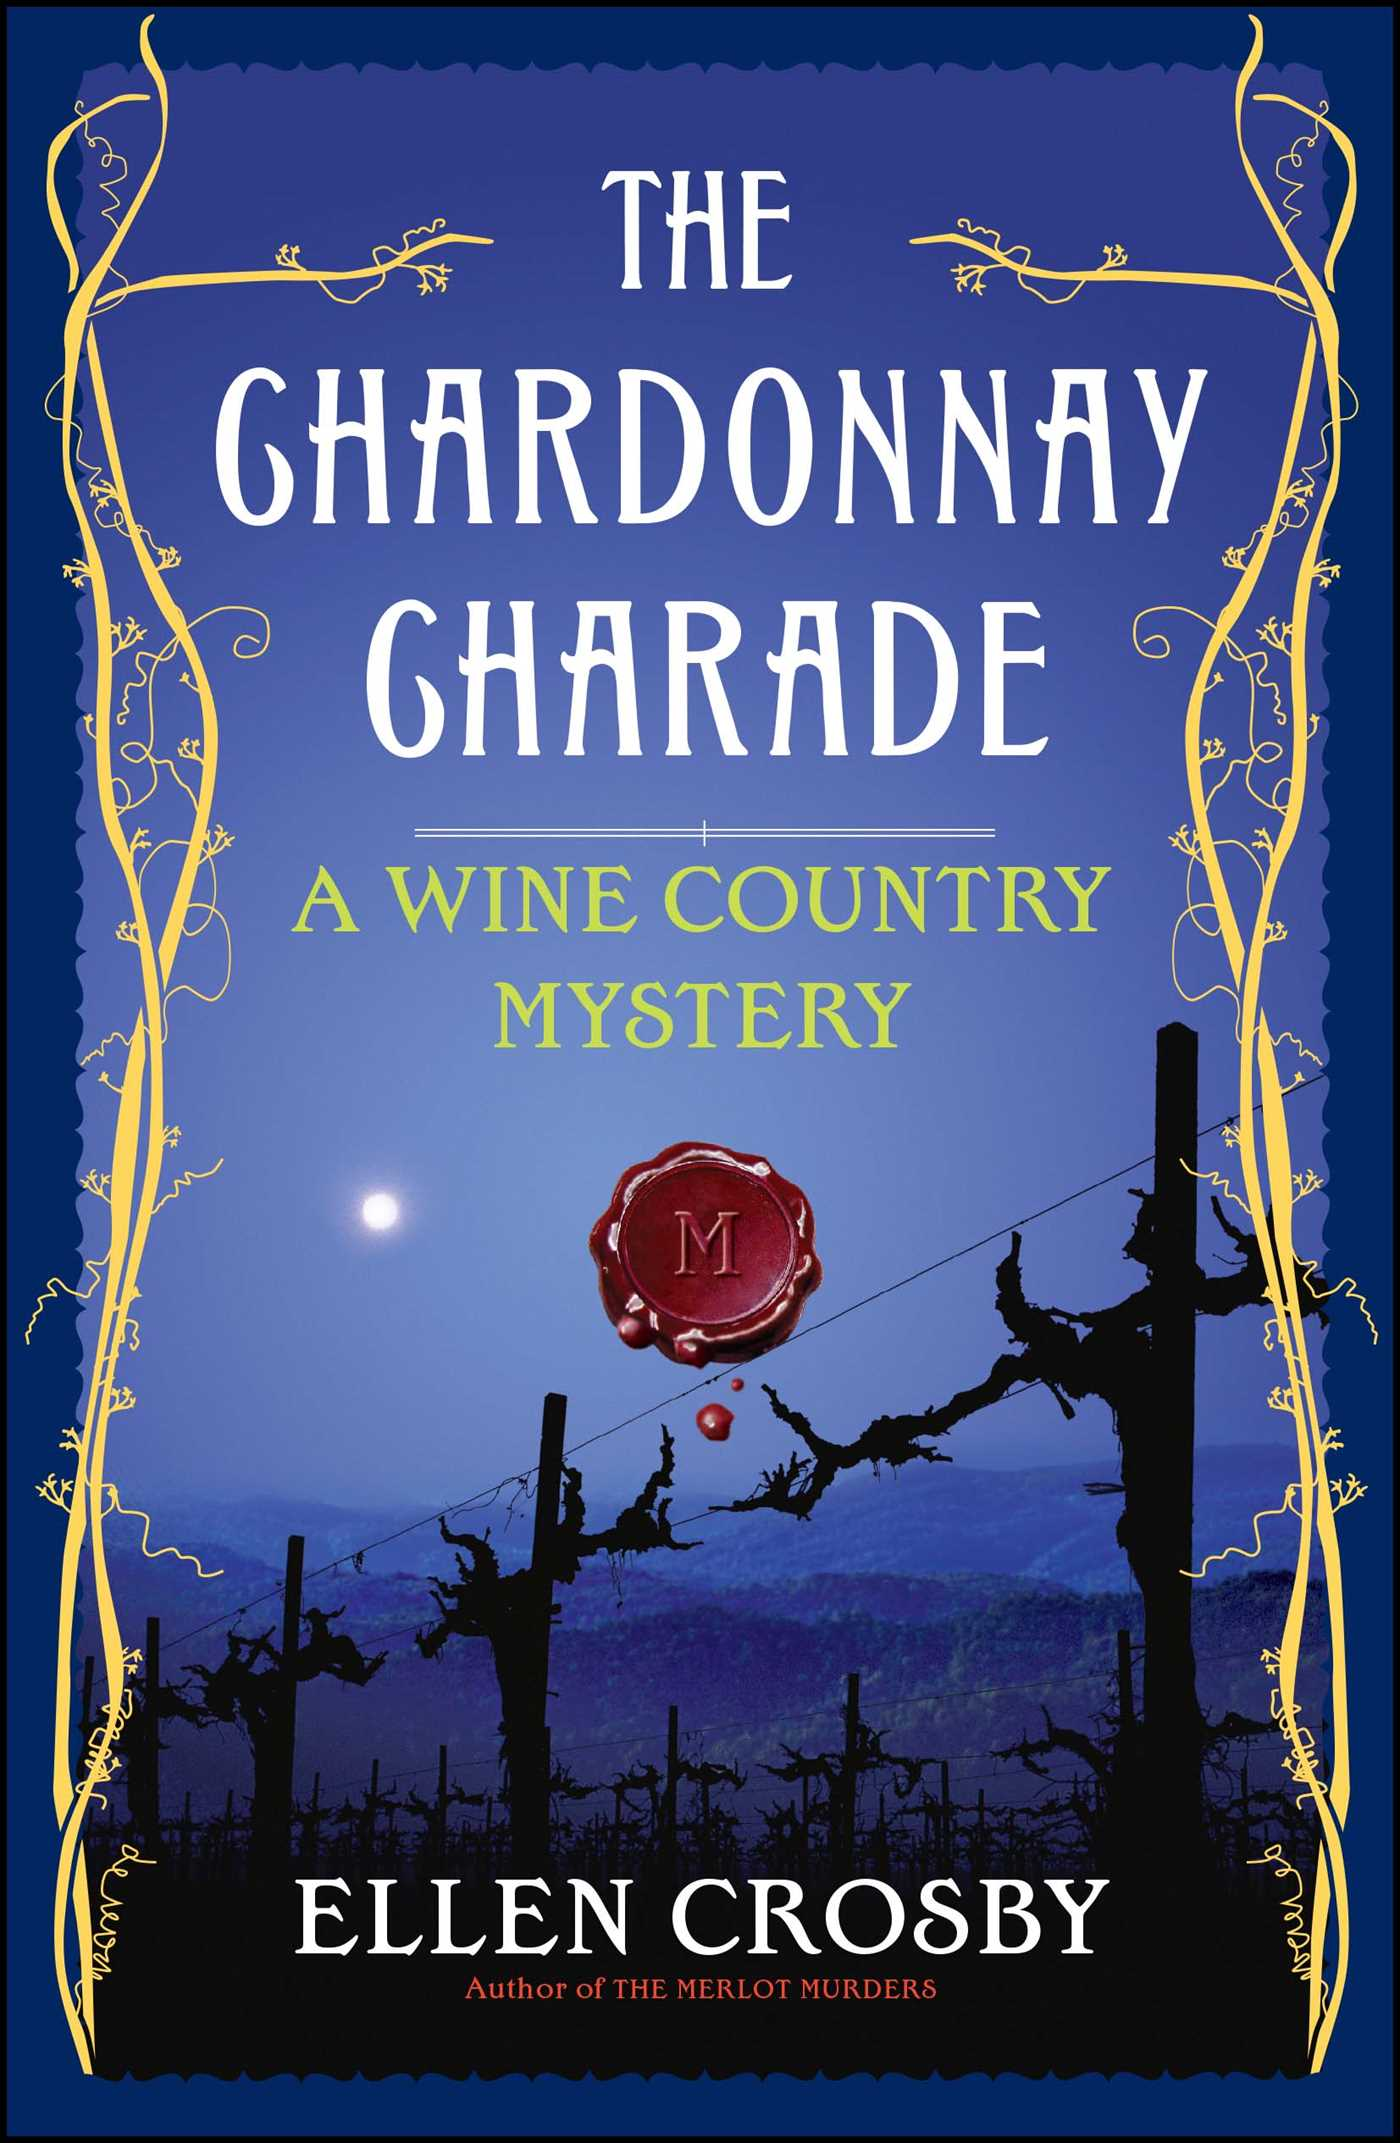 The chardonnay charade 9781501188442 hr